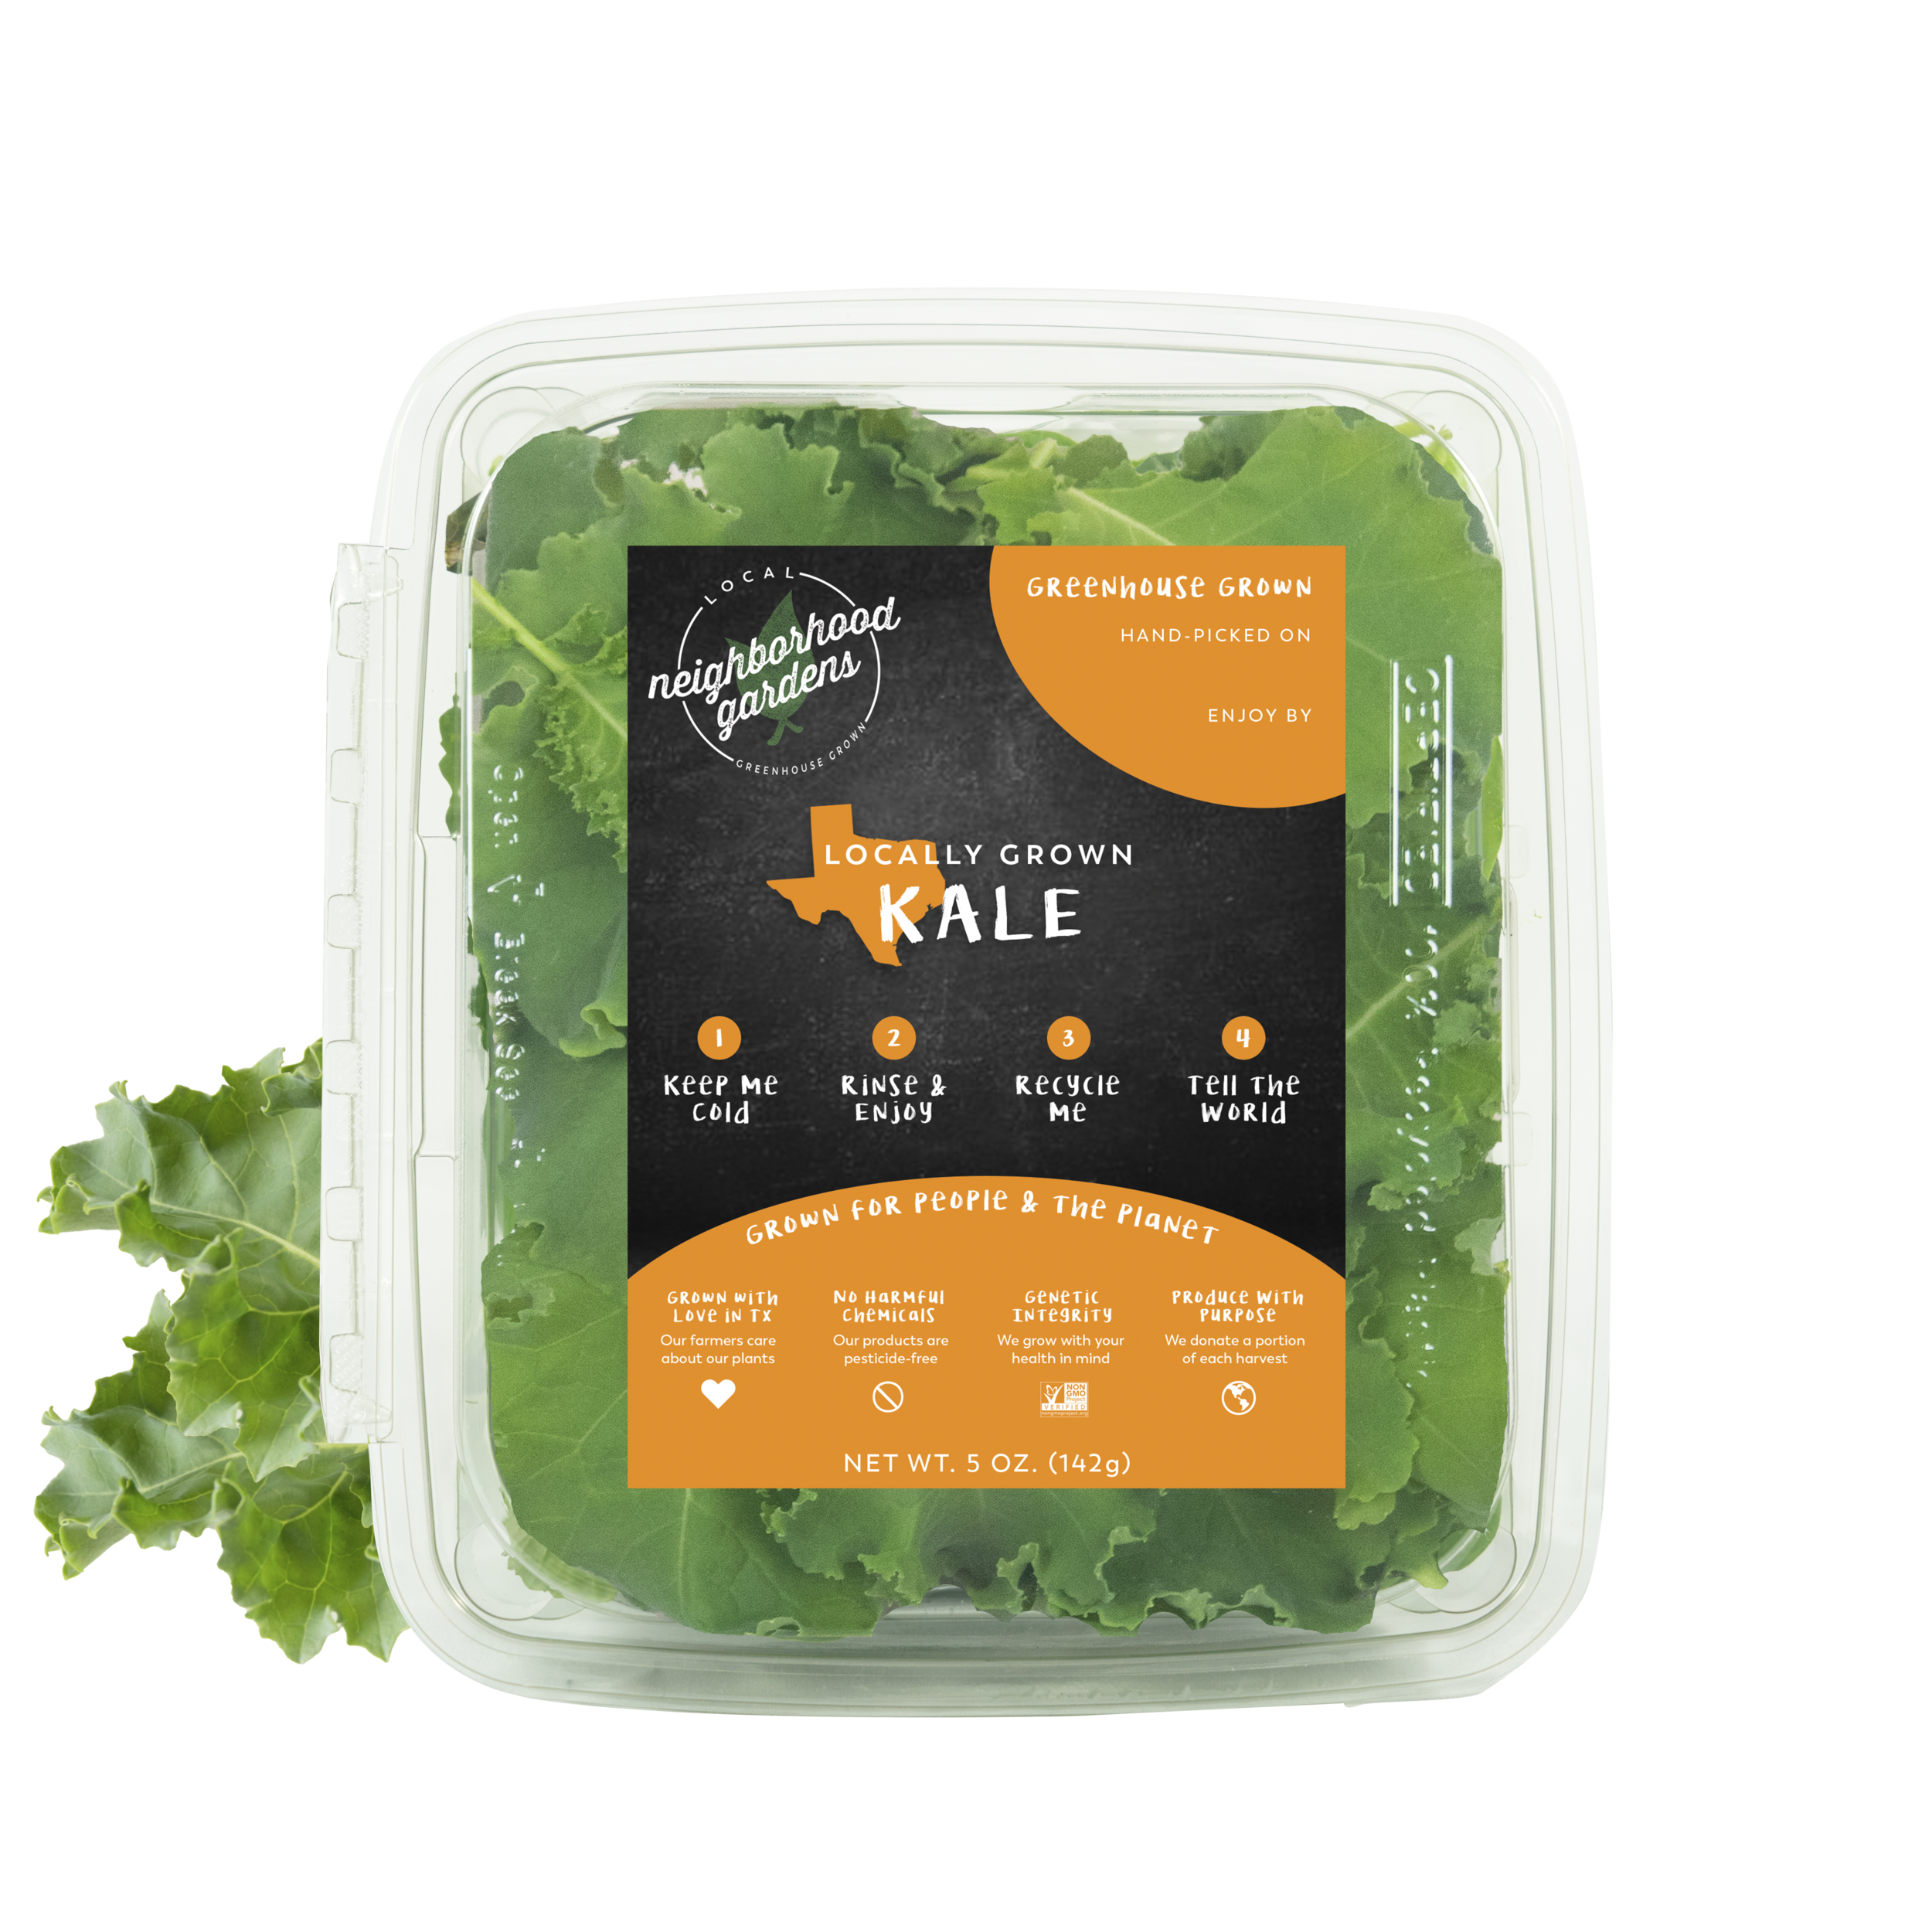 Kale - A tender, flavorful blend of locally greenhouse grown kale. We harvest our kale while the leaves are still soft and supple bringing you a taste that you won't forget. Each kale leaf is carefully harvested and packed by hand so that you'll fall in love with every forkful.